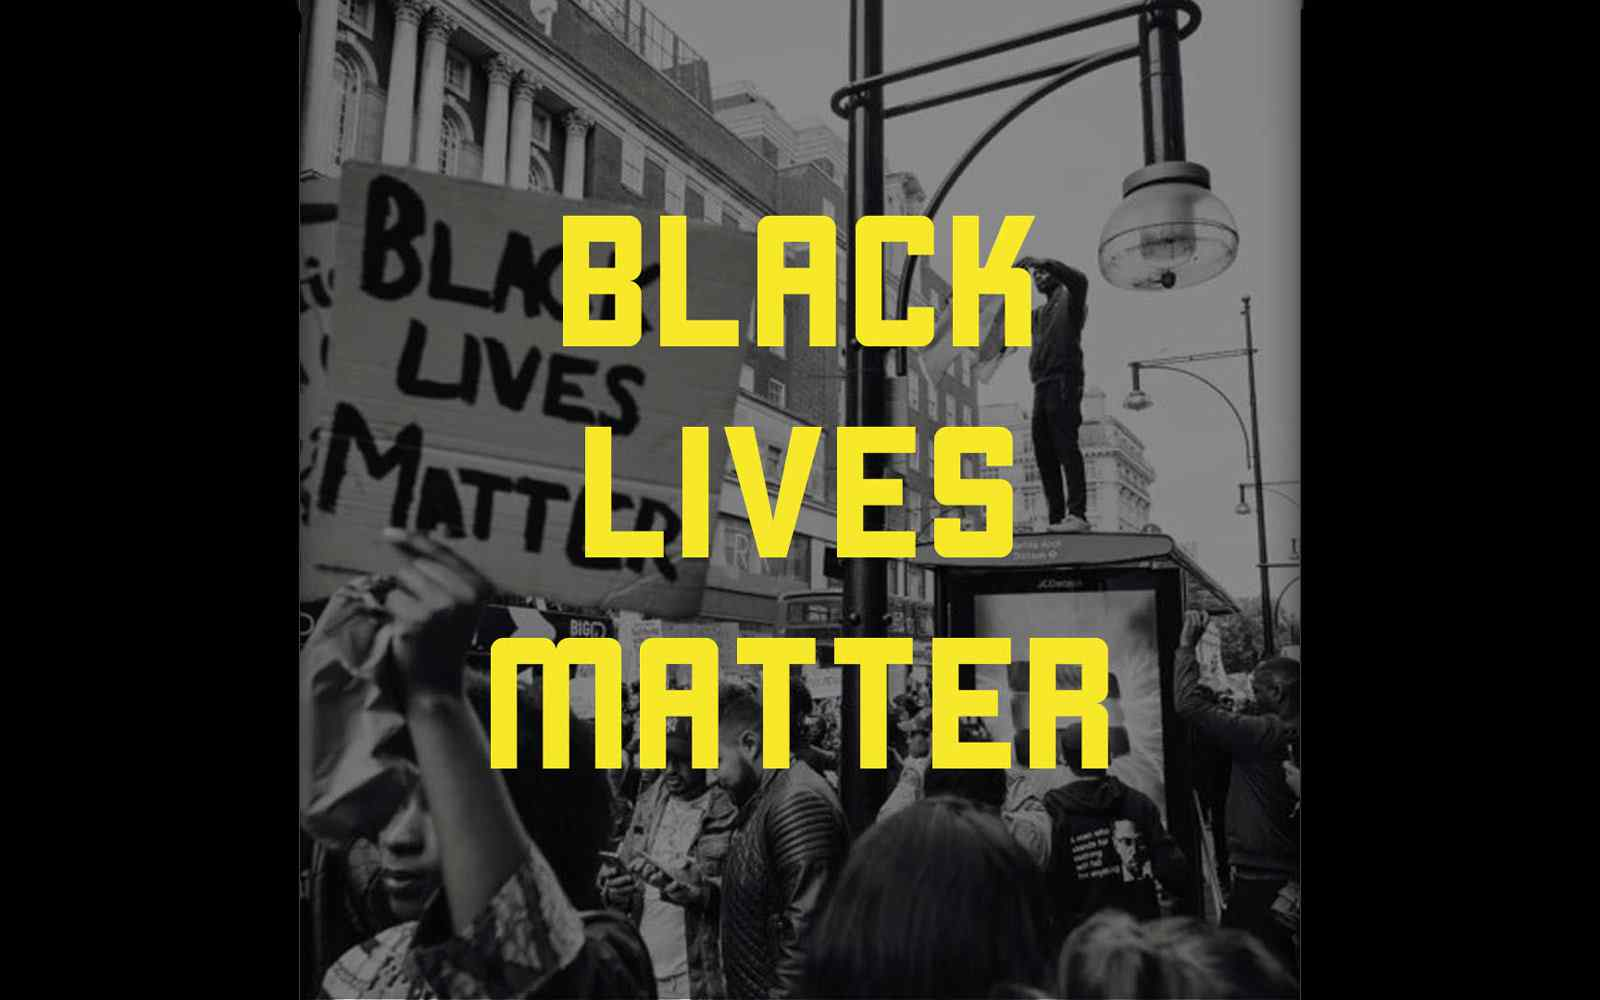 The words Black Lives Matter placed over a black and white image of protest